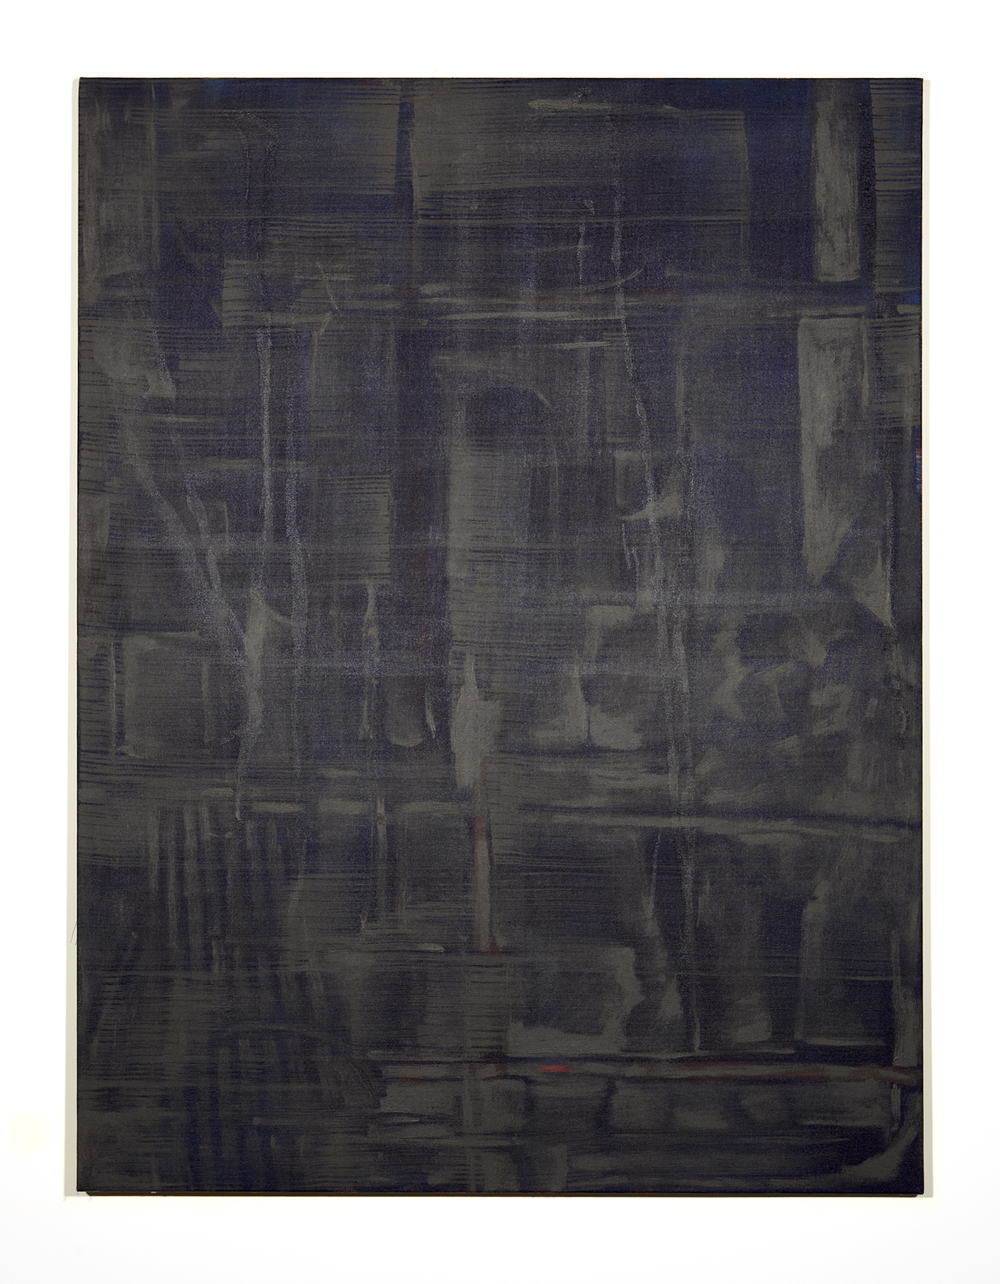 Martin Aagard Hansen. Great Palace, 2014, acryllic and rabbit glue on linen, 145 cm x 110 cm